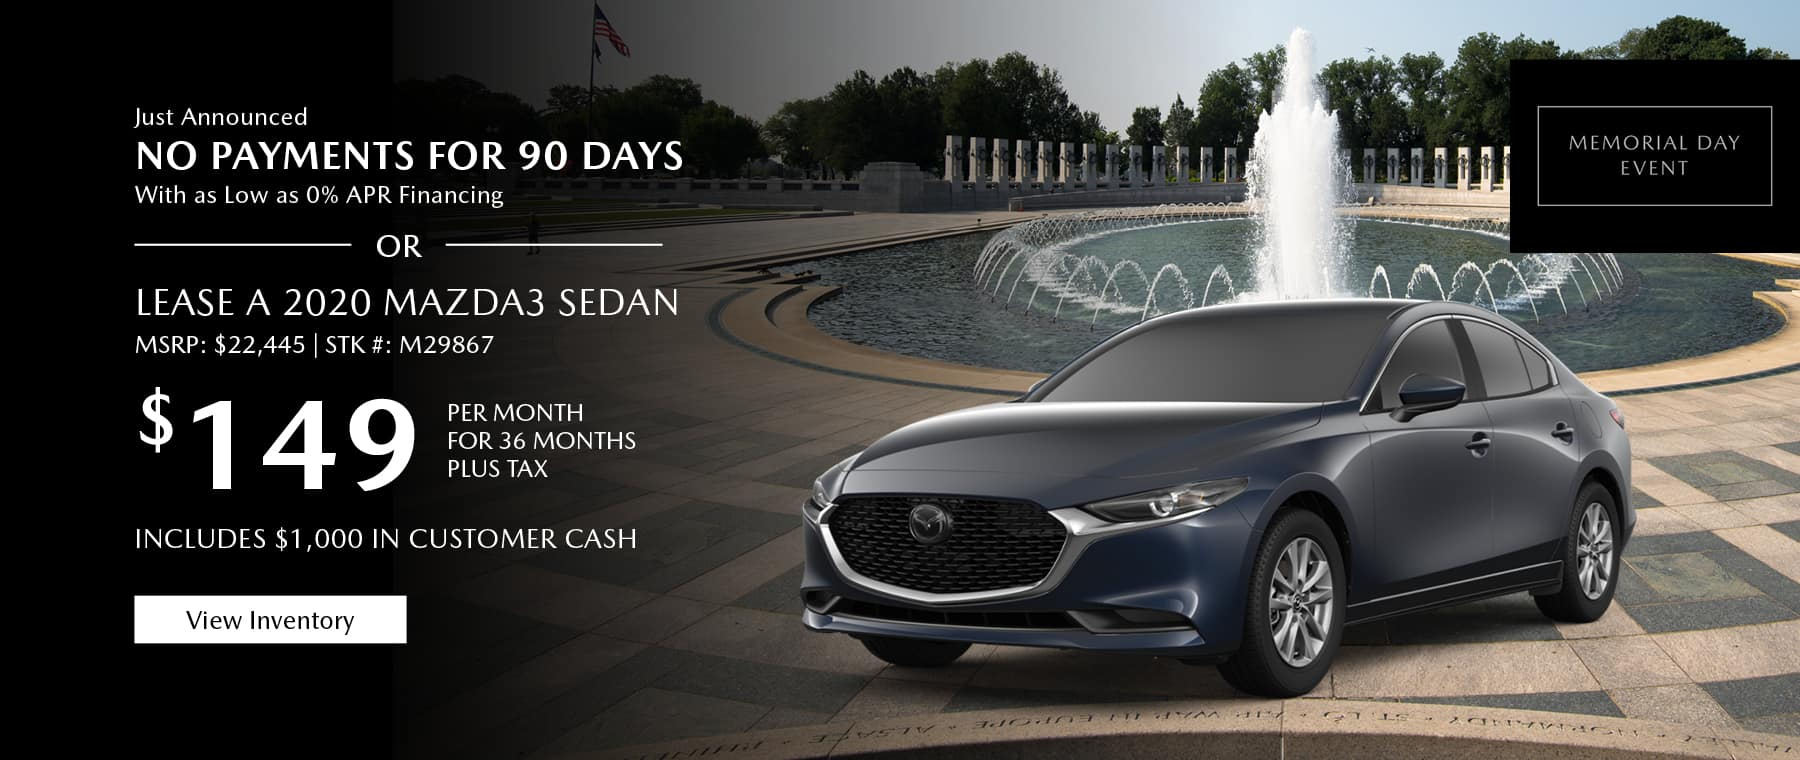 Just Announced, No payments for 90 days with as low as %0 APR financing, or lease the 2020 Mazda3 sedan for $149 per month, plus tax. Gunther will waive your first 2 lease payments. View inventory.